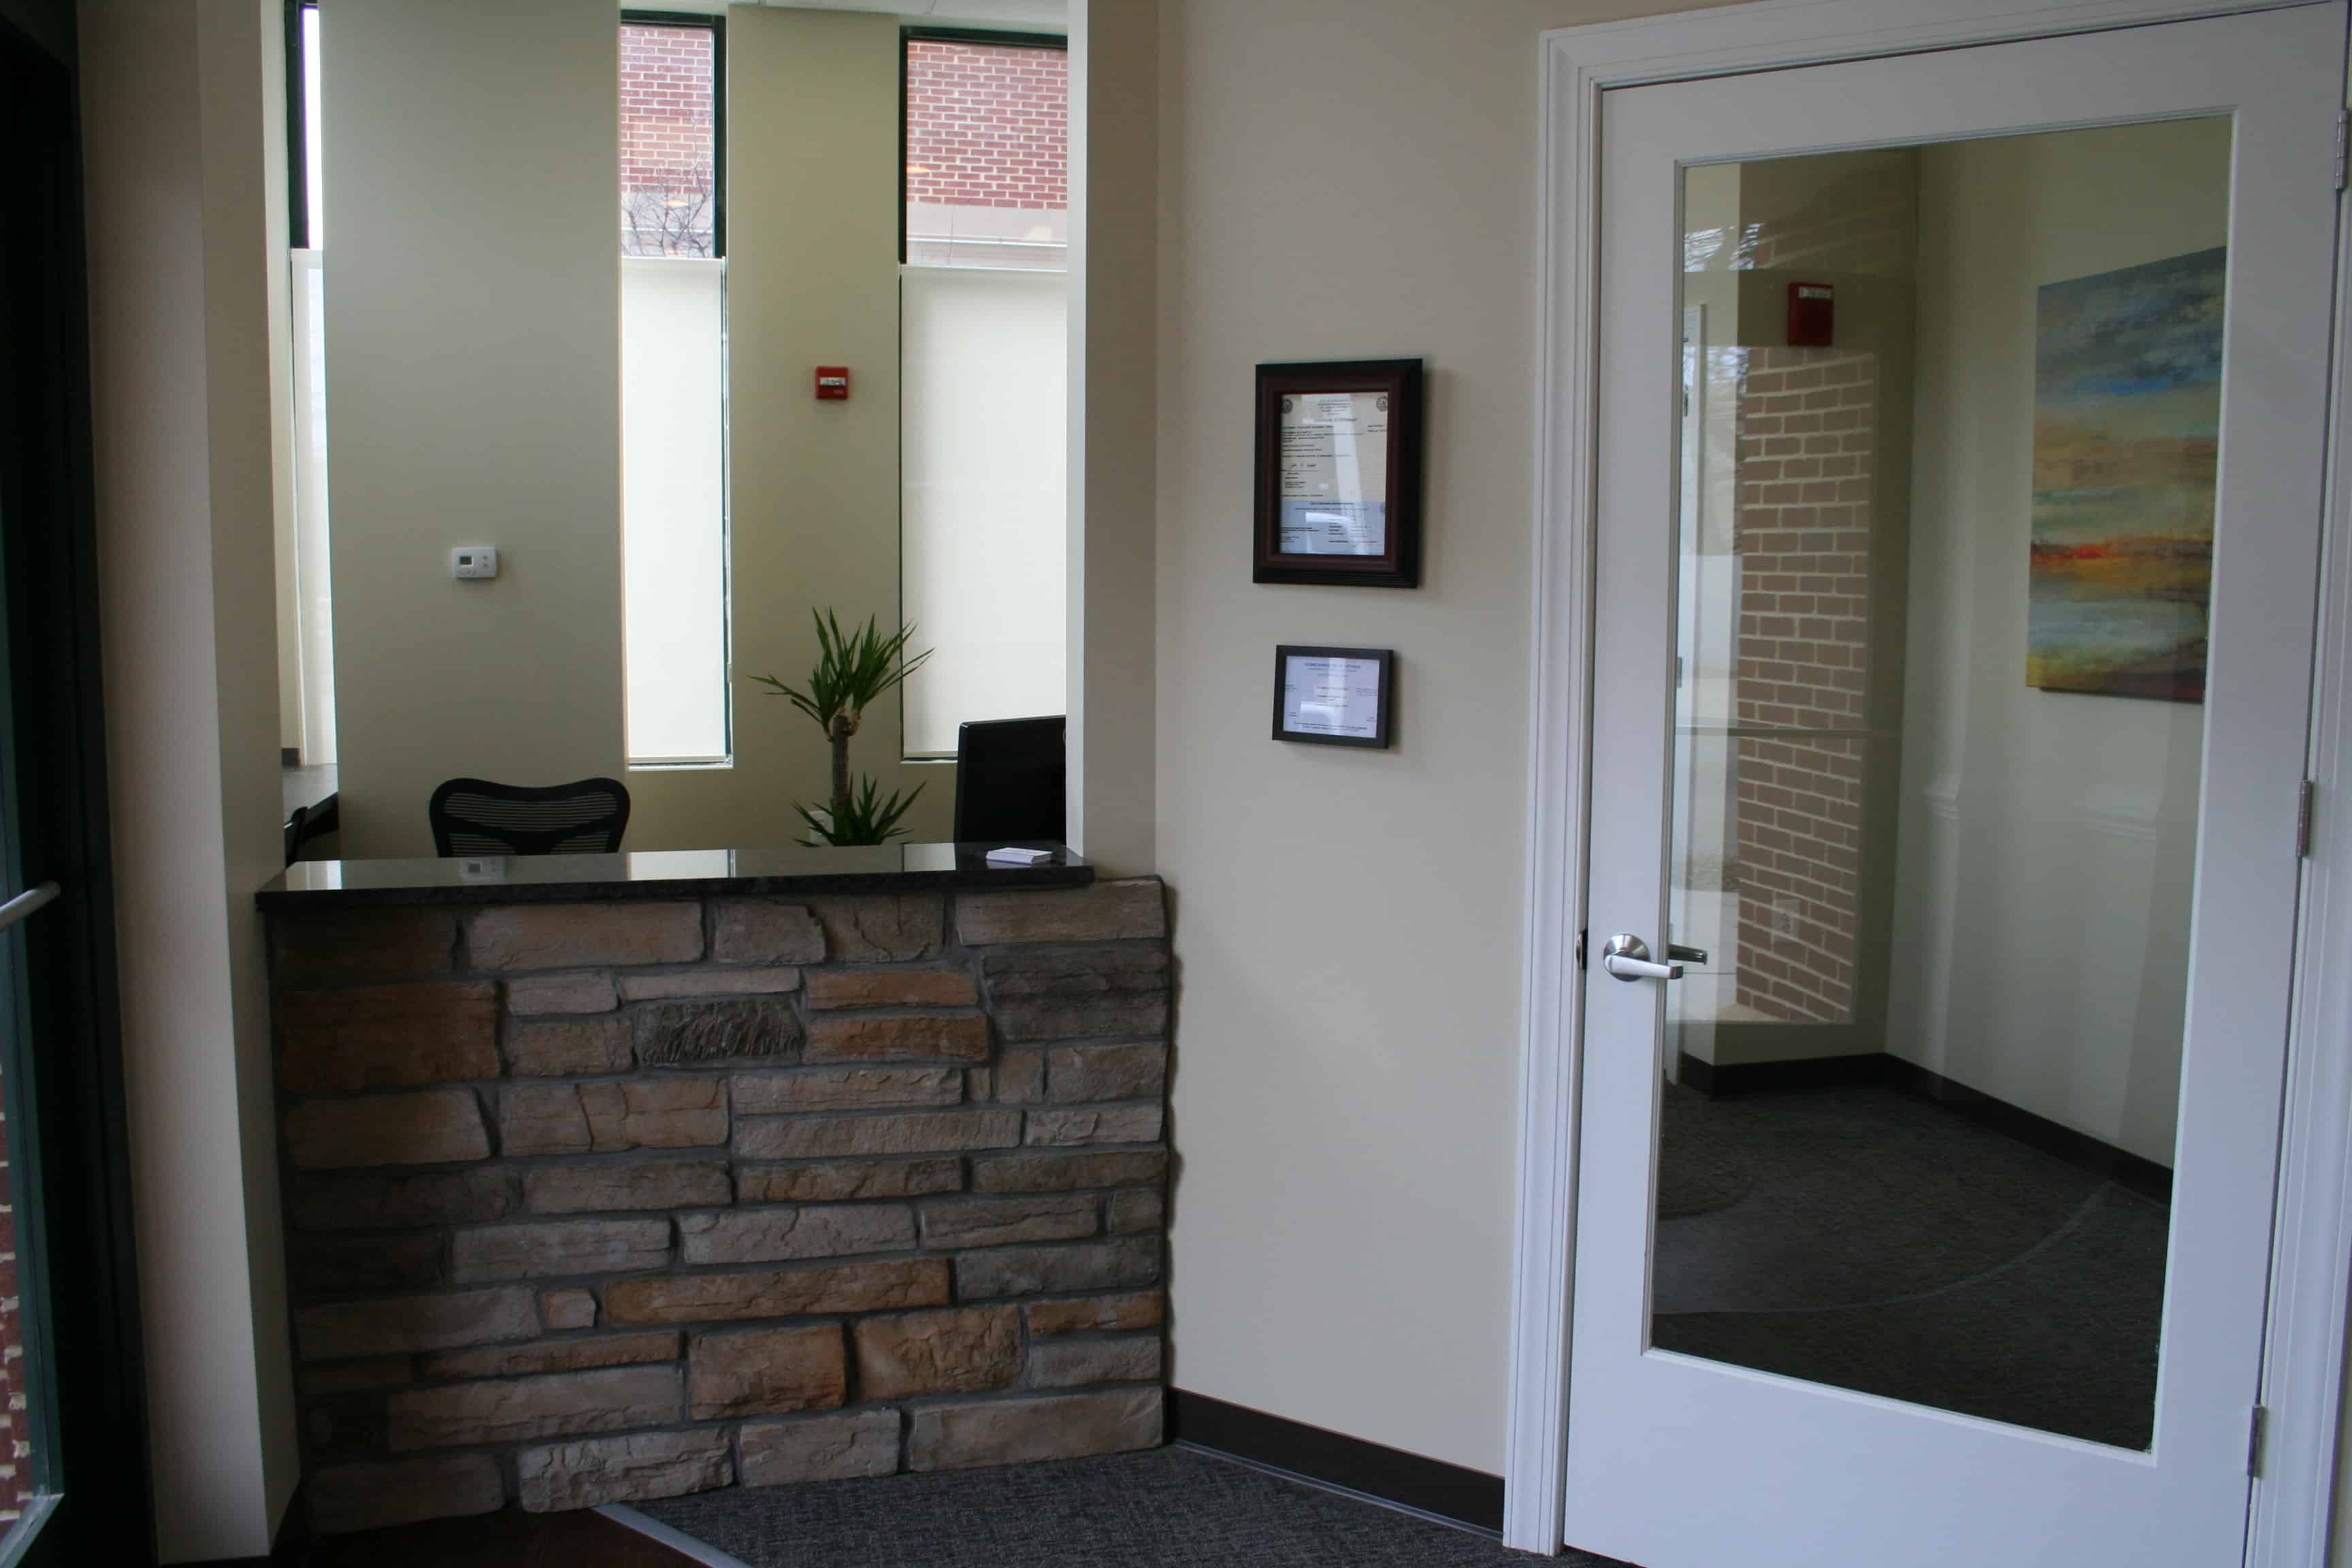 Braddock Dental - Reception Desk